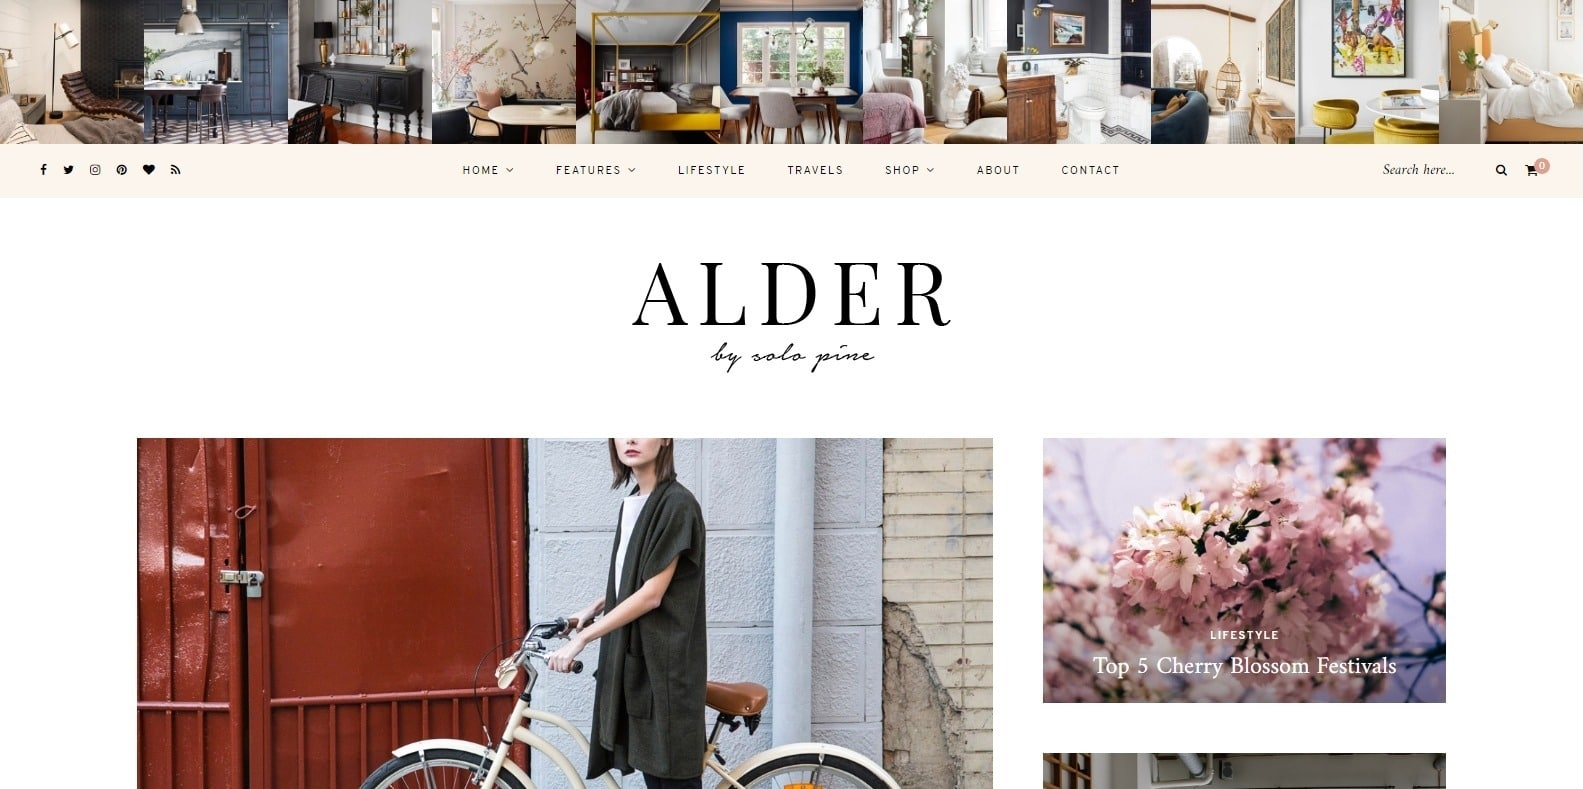 alder-food-blog-website-template